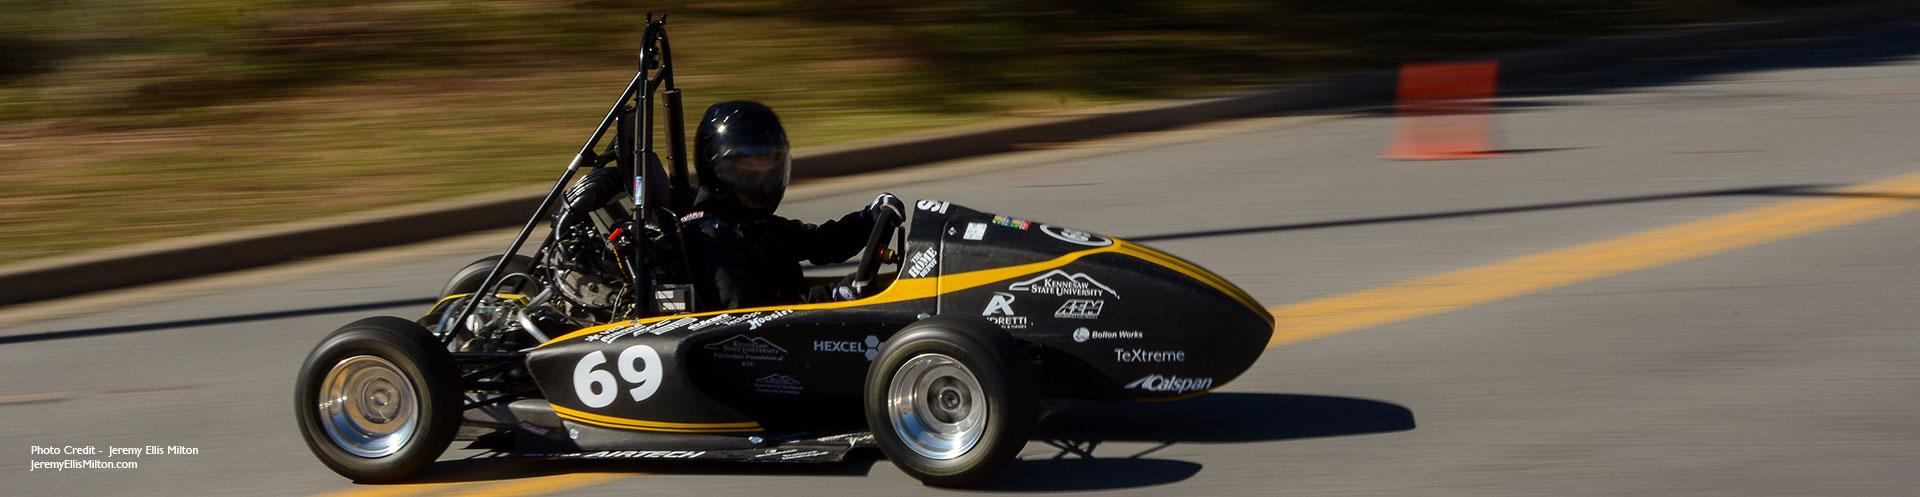 KSU Motorsports Team earns national SAE Honeywell Award